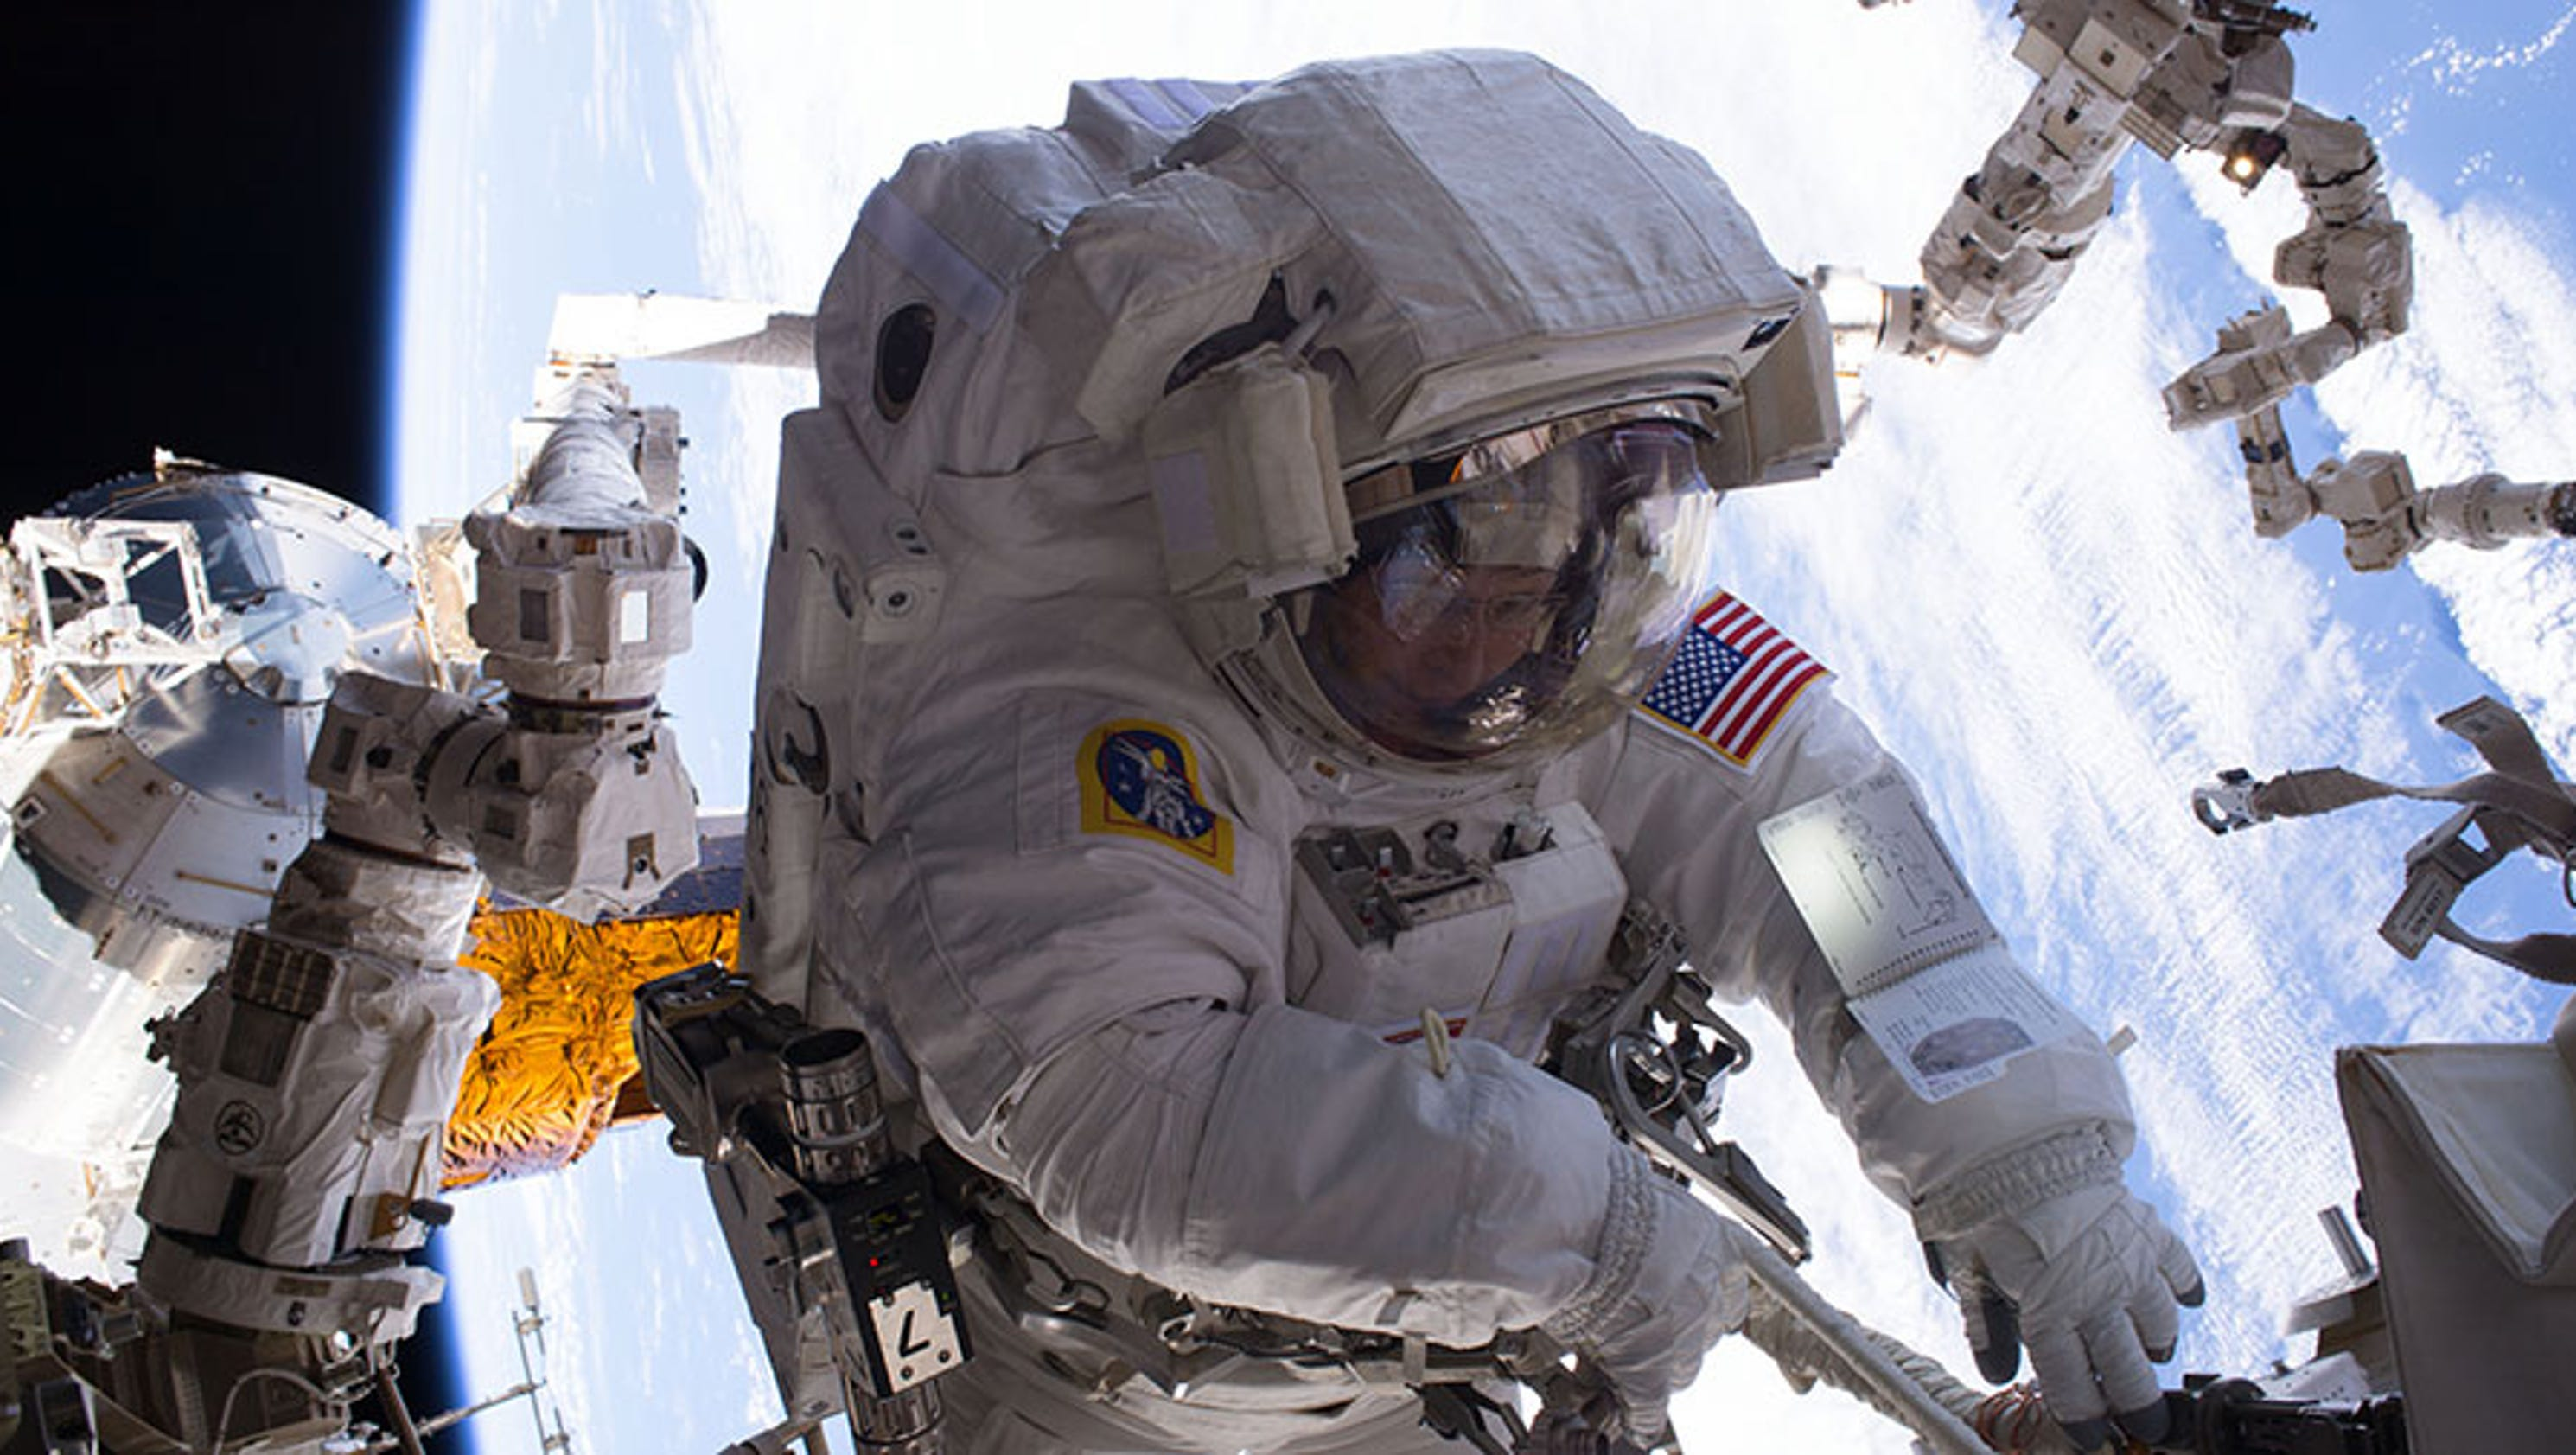 Watch Live: Astronaut space walk from the space station